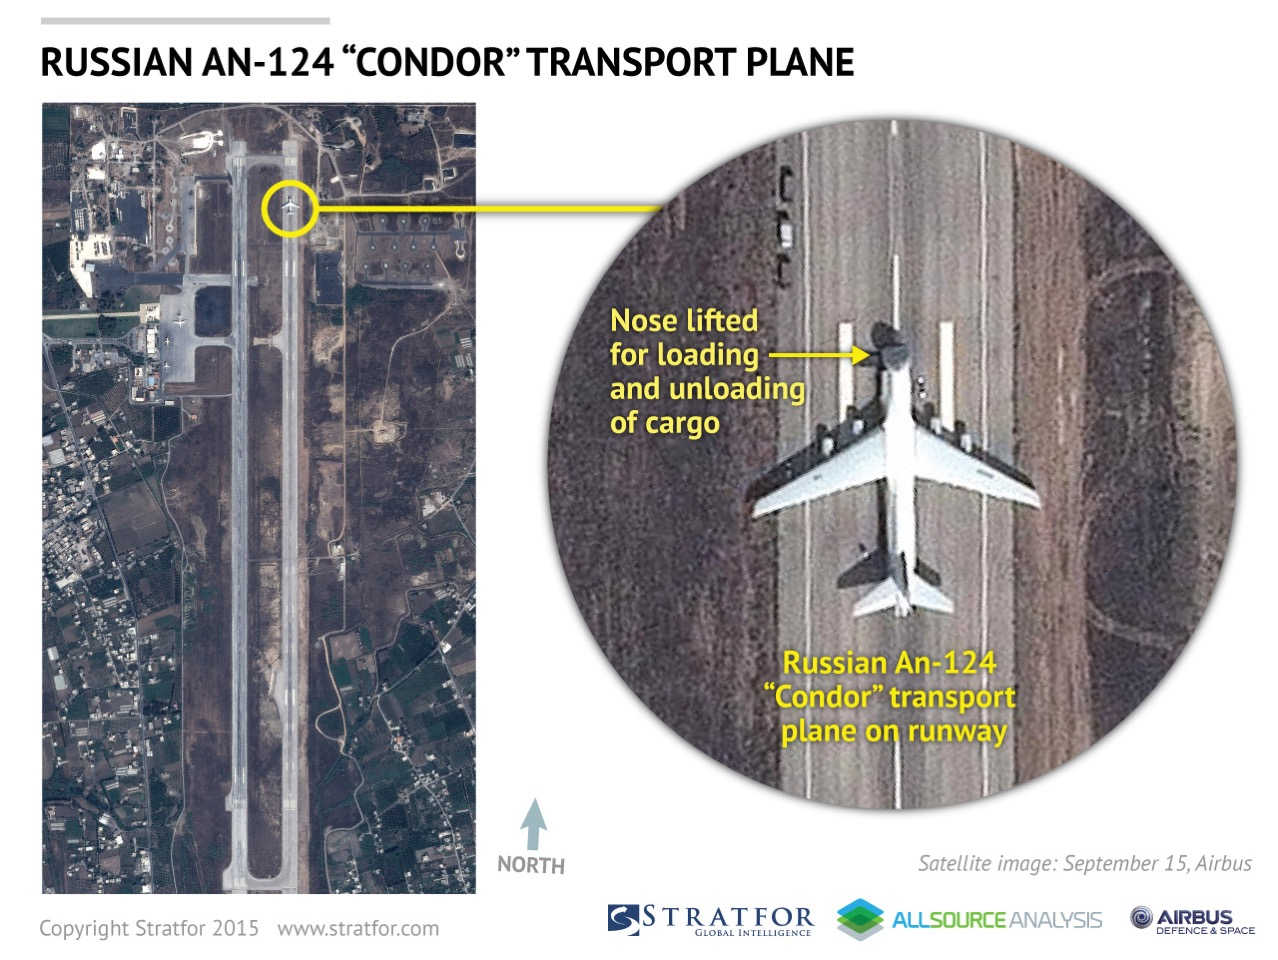 Russian Condor transport plane at Latakia, Syria (Photo by Stratfor, a geopolitical intelligence and advisory firm based in Austin, Texas)